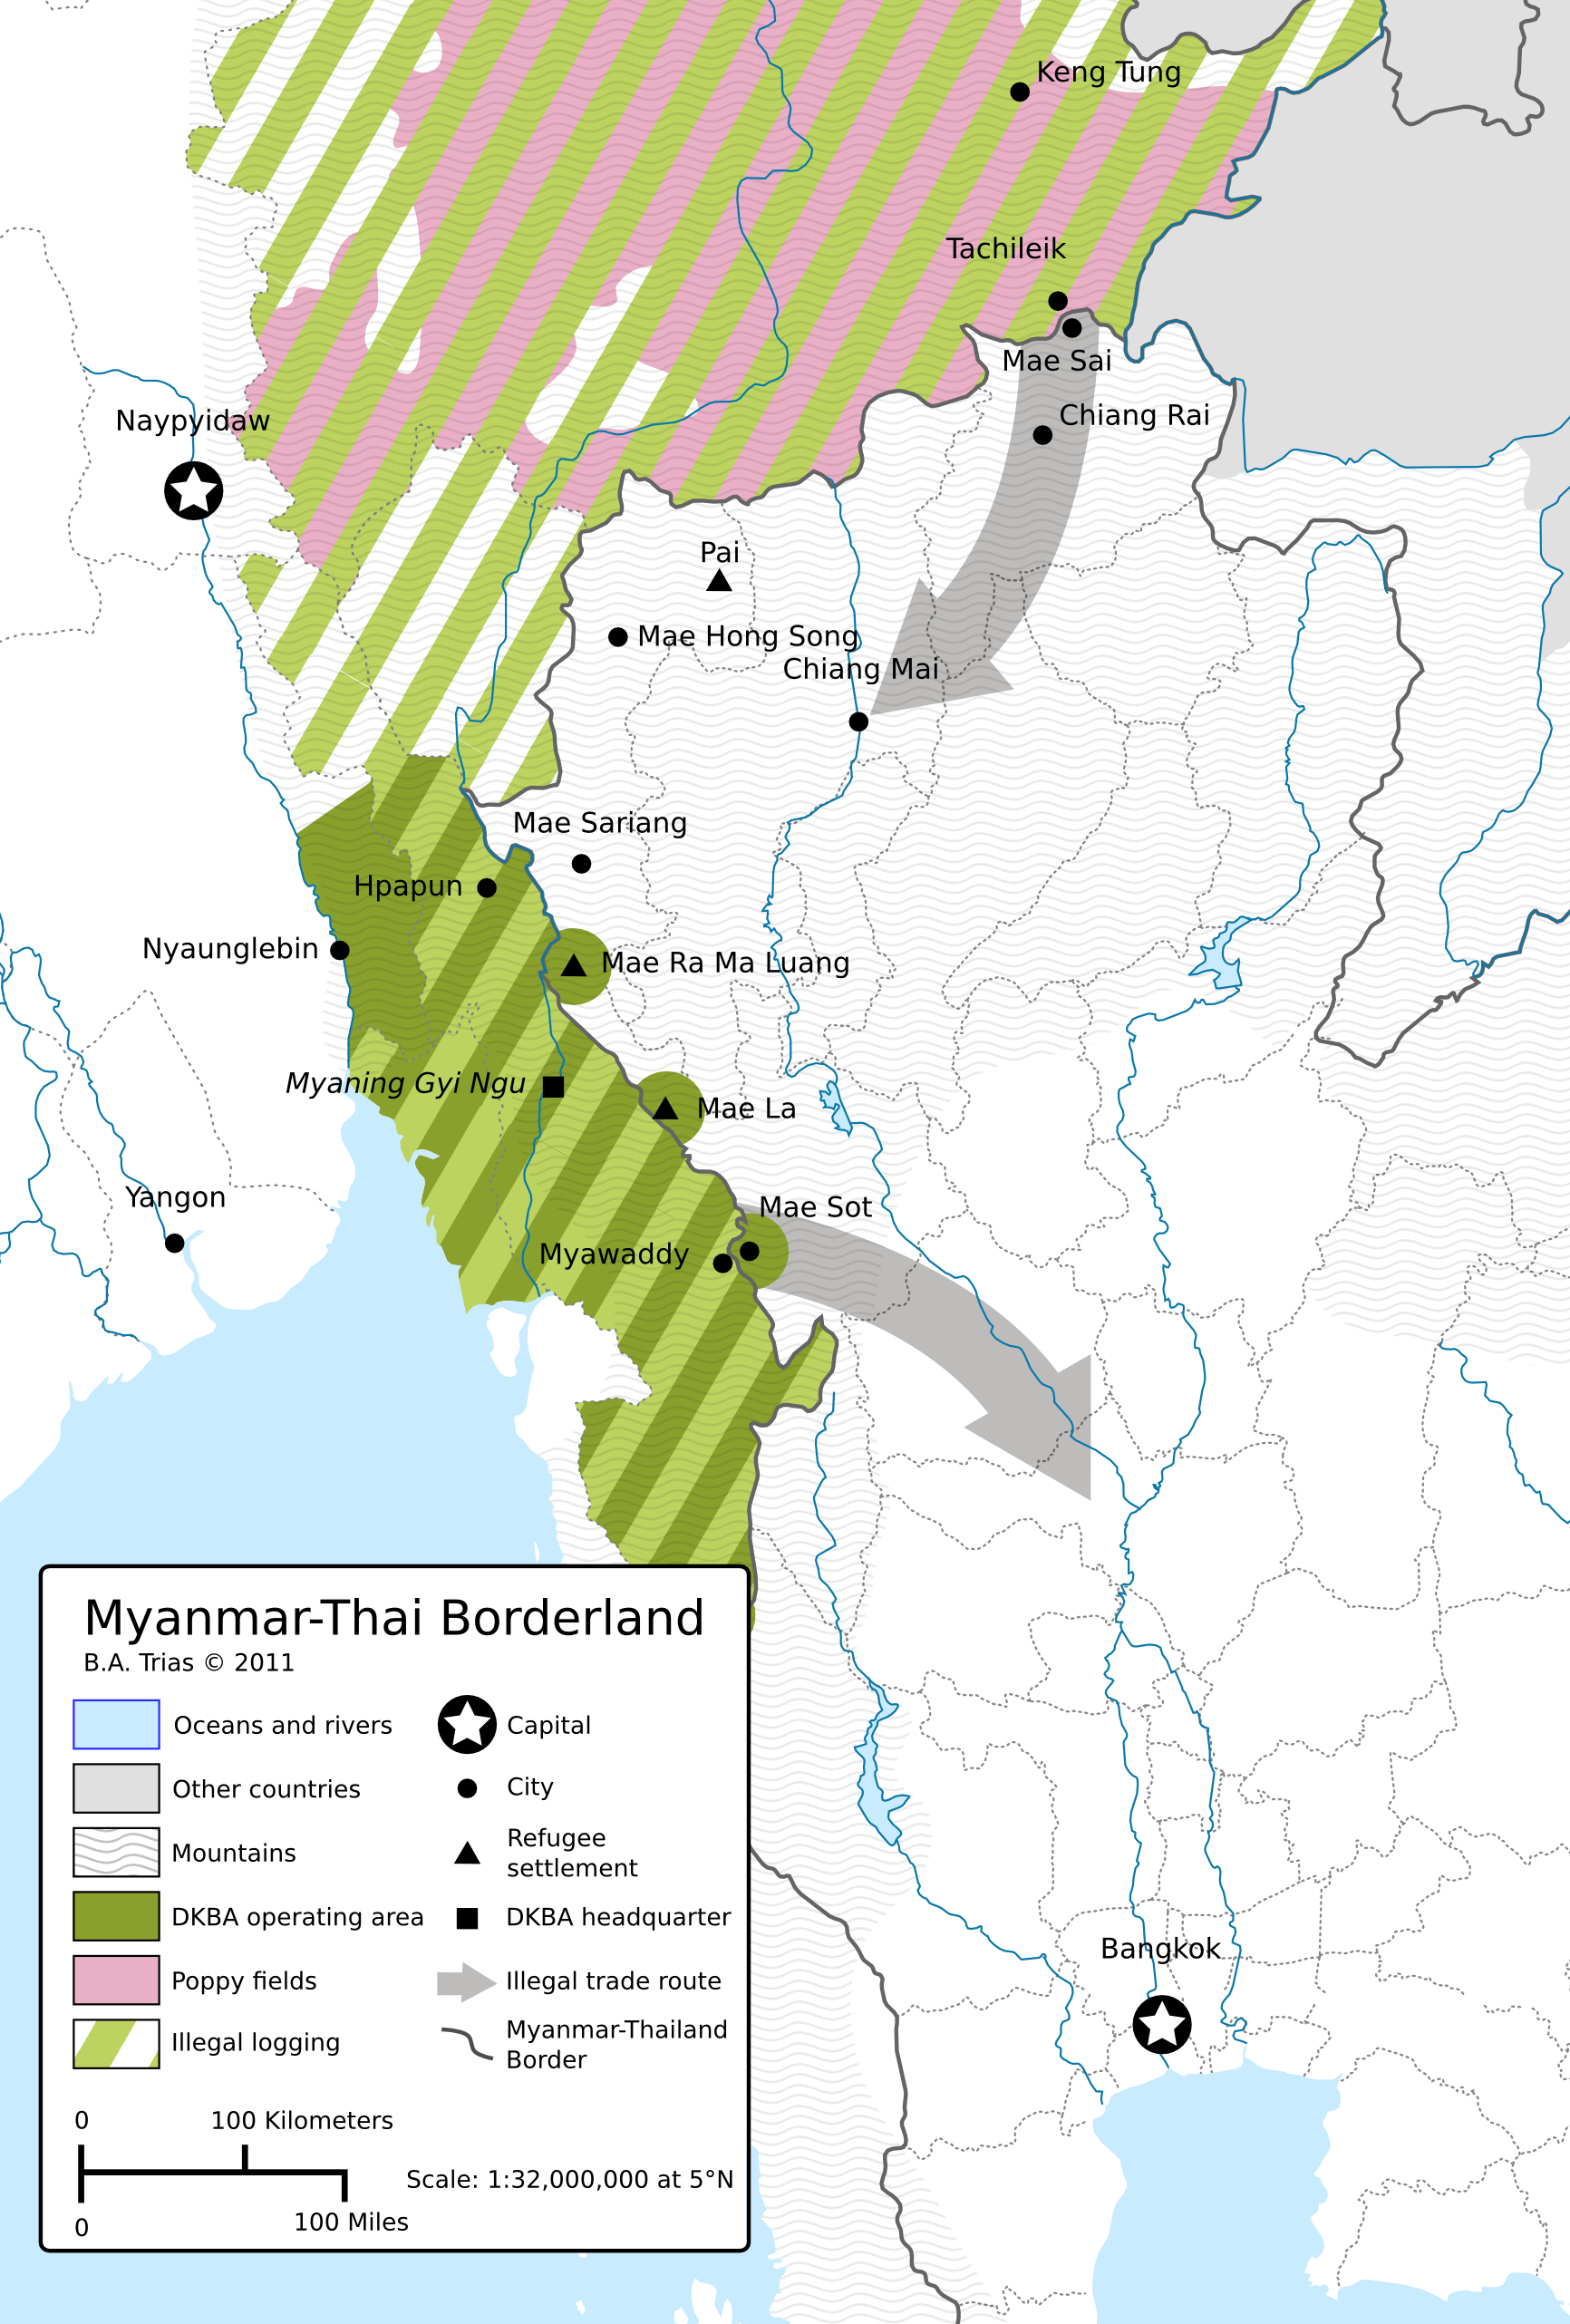 Myanmar Thai Borderland